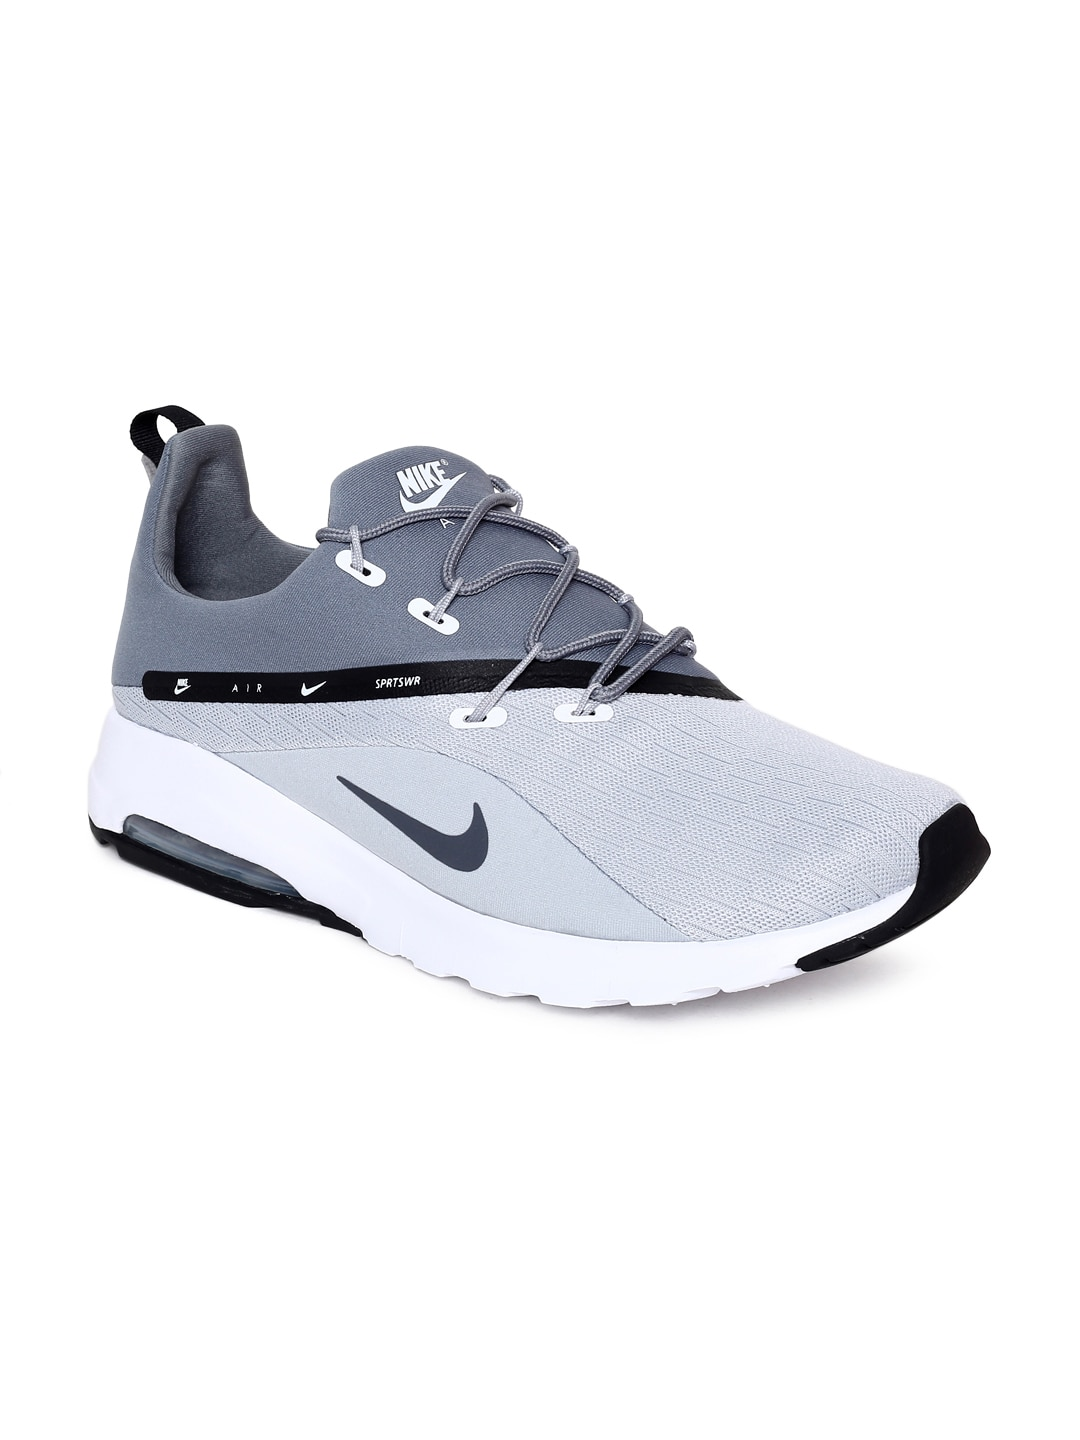 new product 00645 bd2f0 Nike Air Max - Buy Nike Air Max Shoes, Bags, Sneakers in India